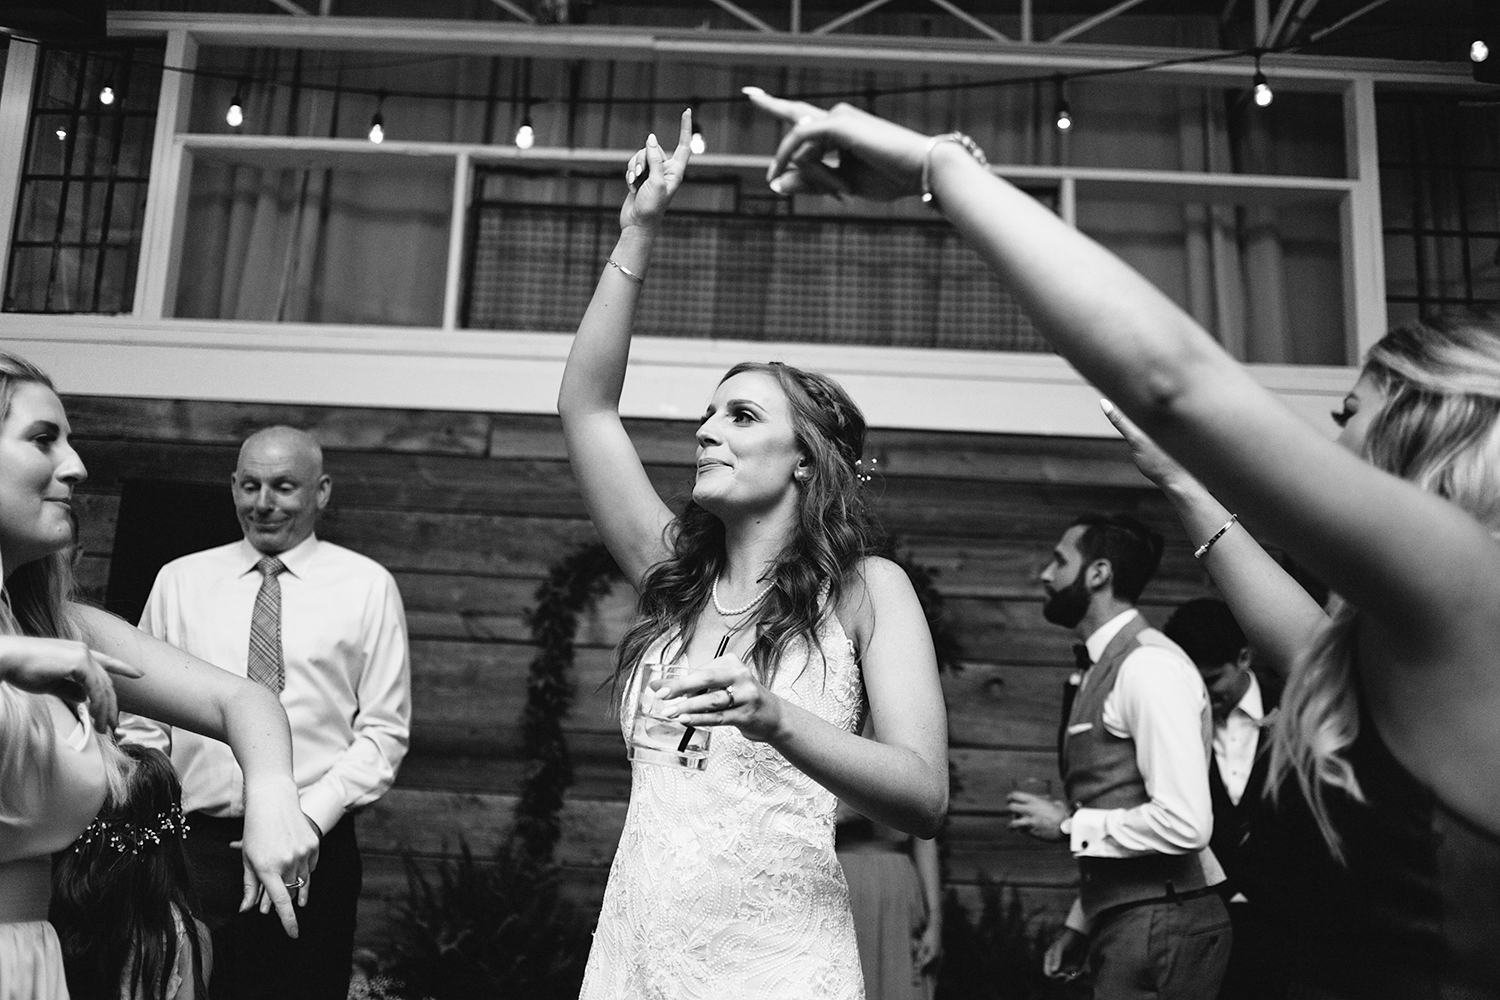 torontos-best-wedding-photographers-ryanne-hollies-photography-photojournalism-artistic-moody-toronto-airship37-graffiti-editorial-reception-dancing-together-hilarious-good-times-memories-bride-singing-partying-to-good-charolette.jpg